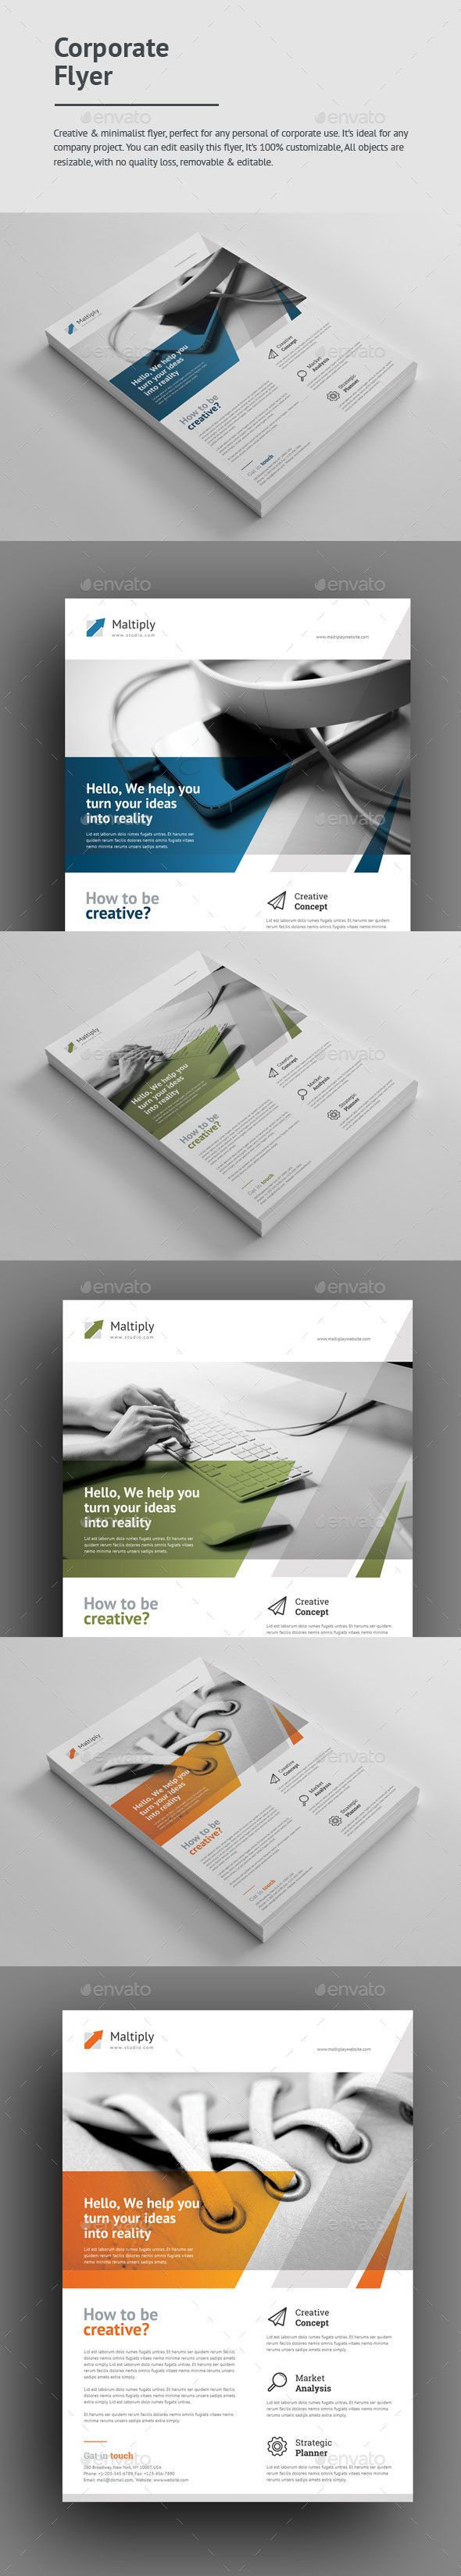 Corporate Flyer  — PSD Template #product #ad • Download ➝ graphicriver.net...